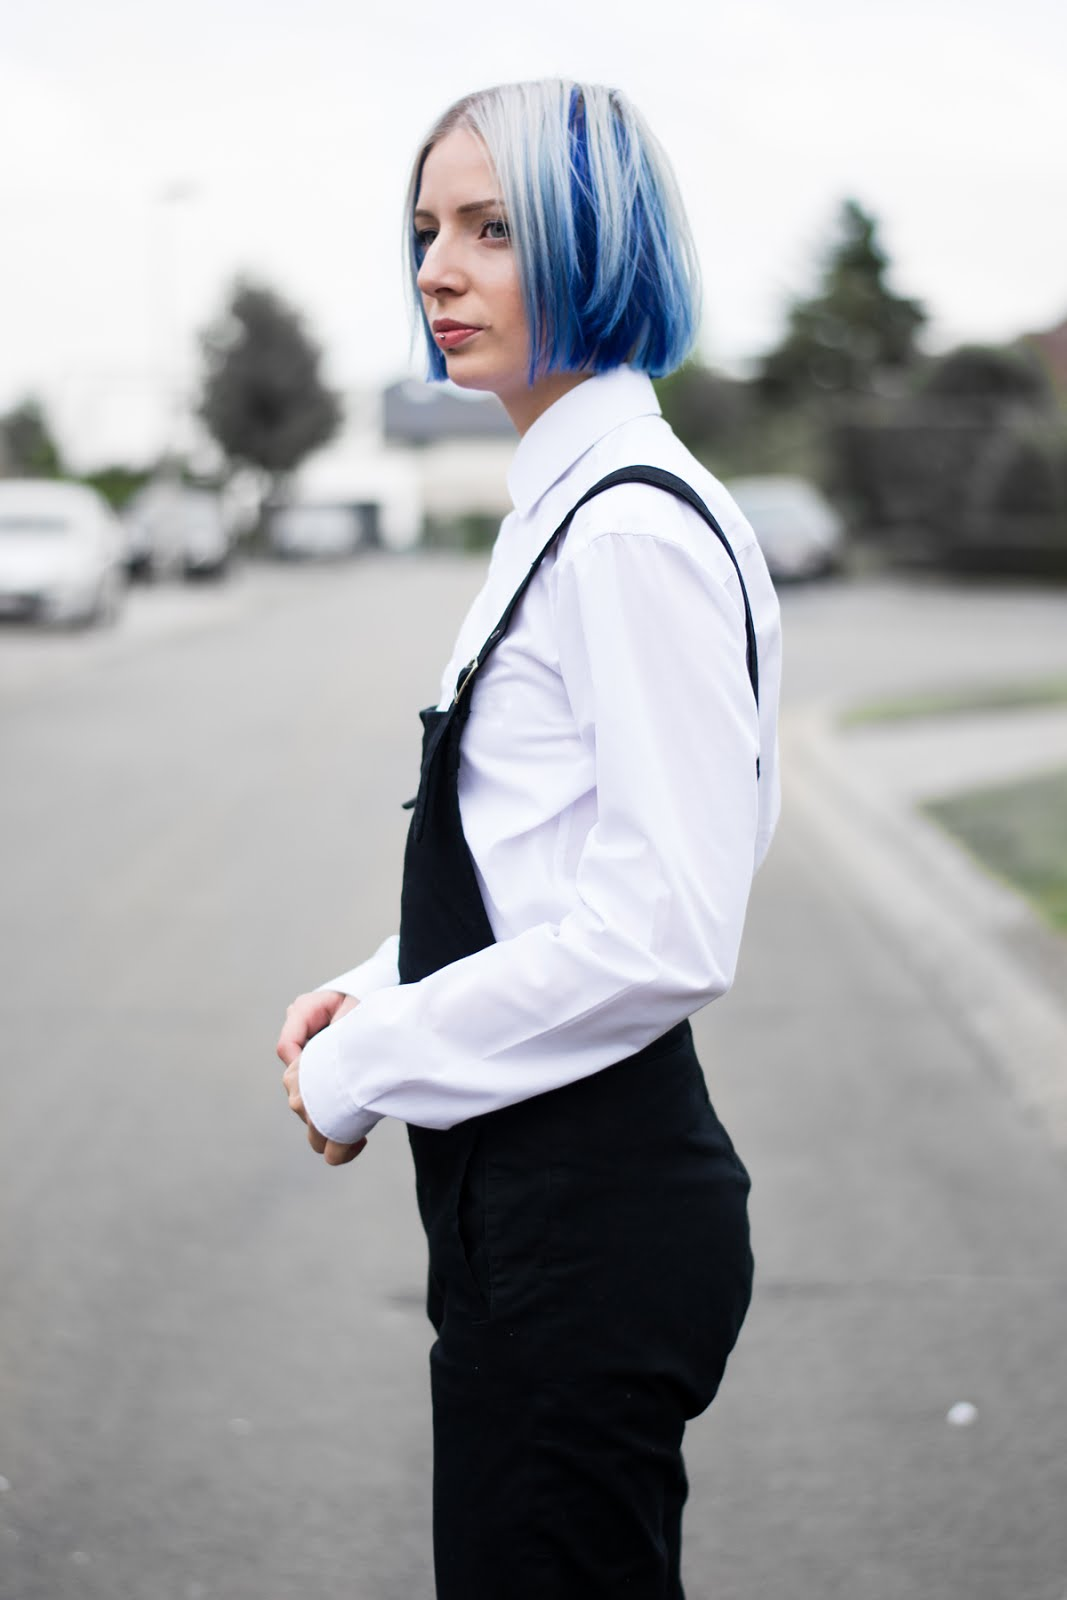 Black dungarees, asos, preppy styling, how to wear, blue hair, salopette, colorful hair, l'oreal